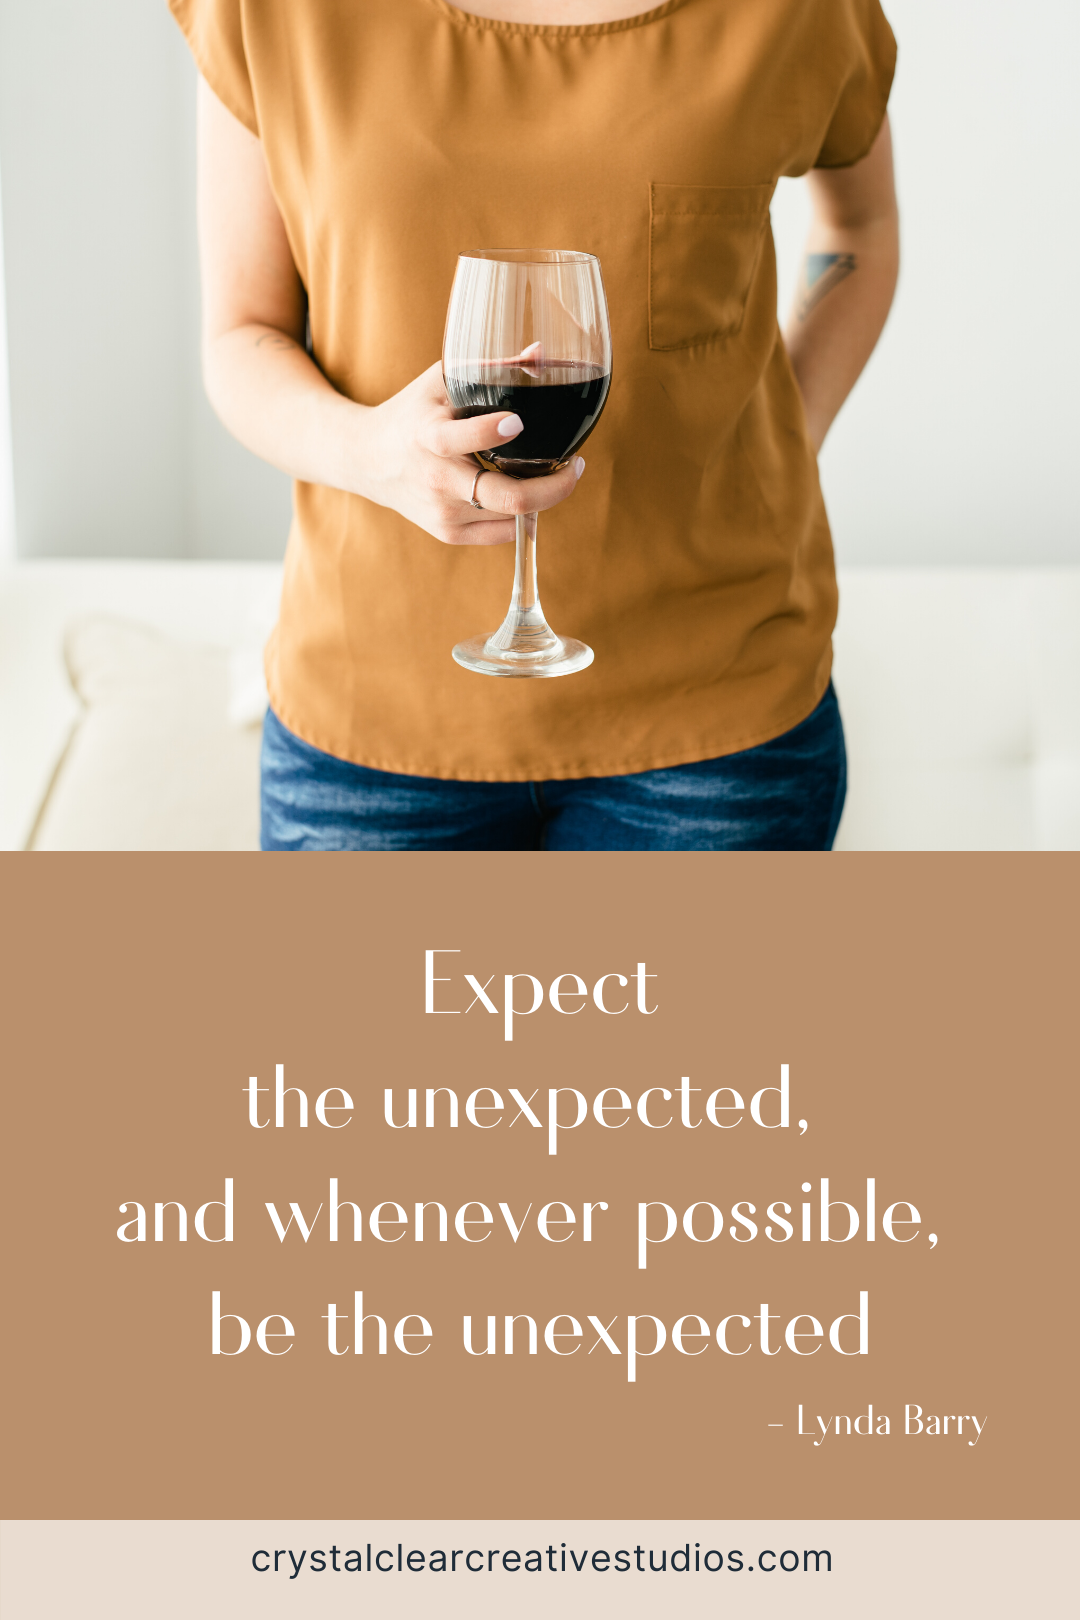 Expect the unexpected, and whenever possible, be the unexpected.